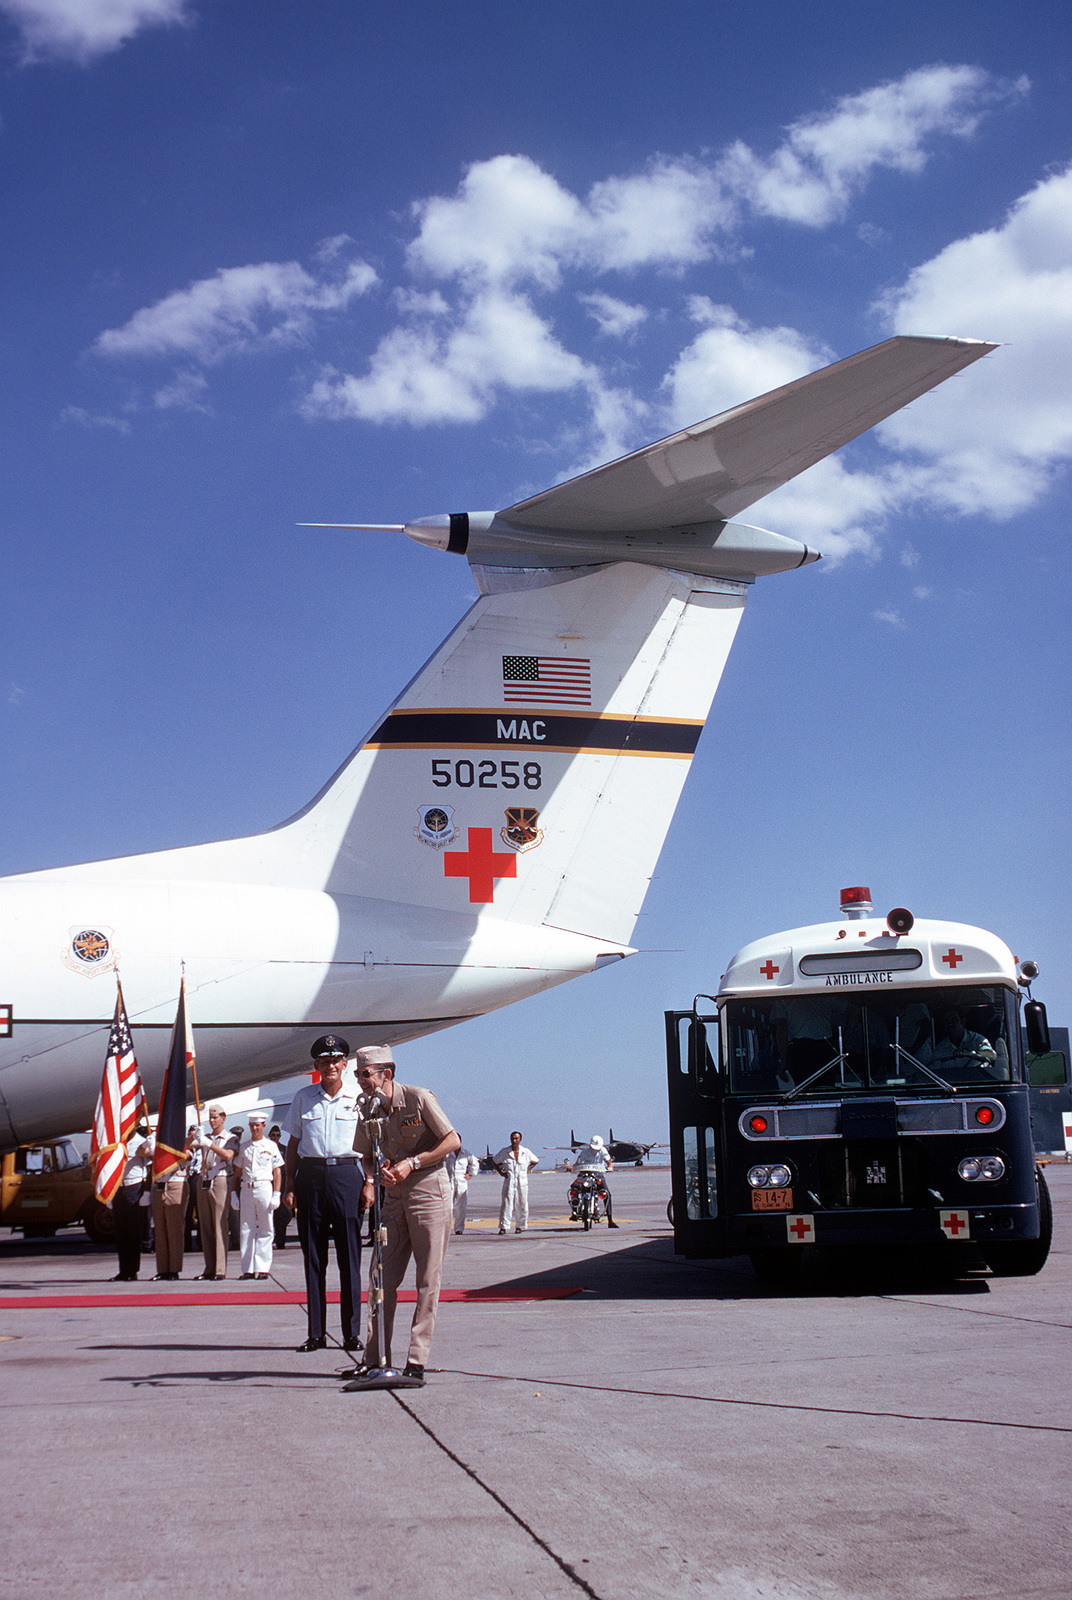 Ex-POW and U.S.Navy CMDR James Glenn Pirie (Captured 22 Jun 67), at the flight line microphone, thanks the crowd of well wishers and press before departing for the United States on the C-141 Starlifter in the background. 13th Air Force Commander, LGEN William G. Moore Jr., stands in background near the ambulance bus that brought the ex-POWs to the flight line. CMDR Pirie was released in Hanoi by North Vietnam on 18 Feb 73